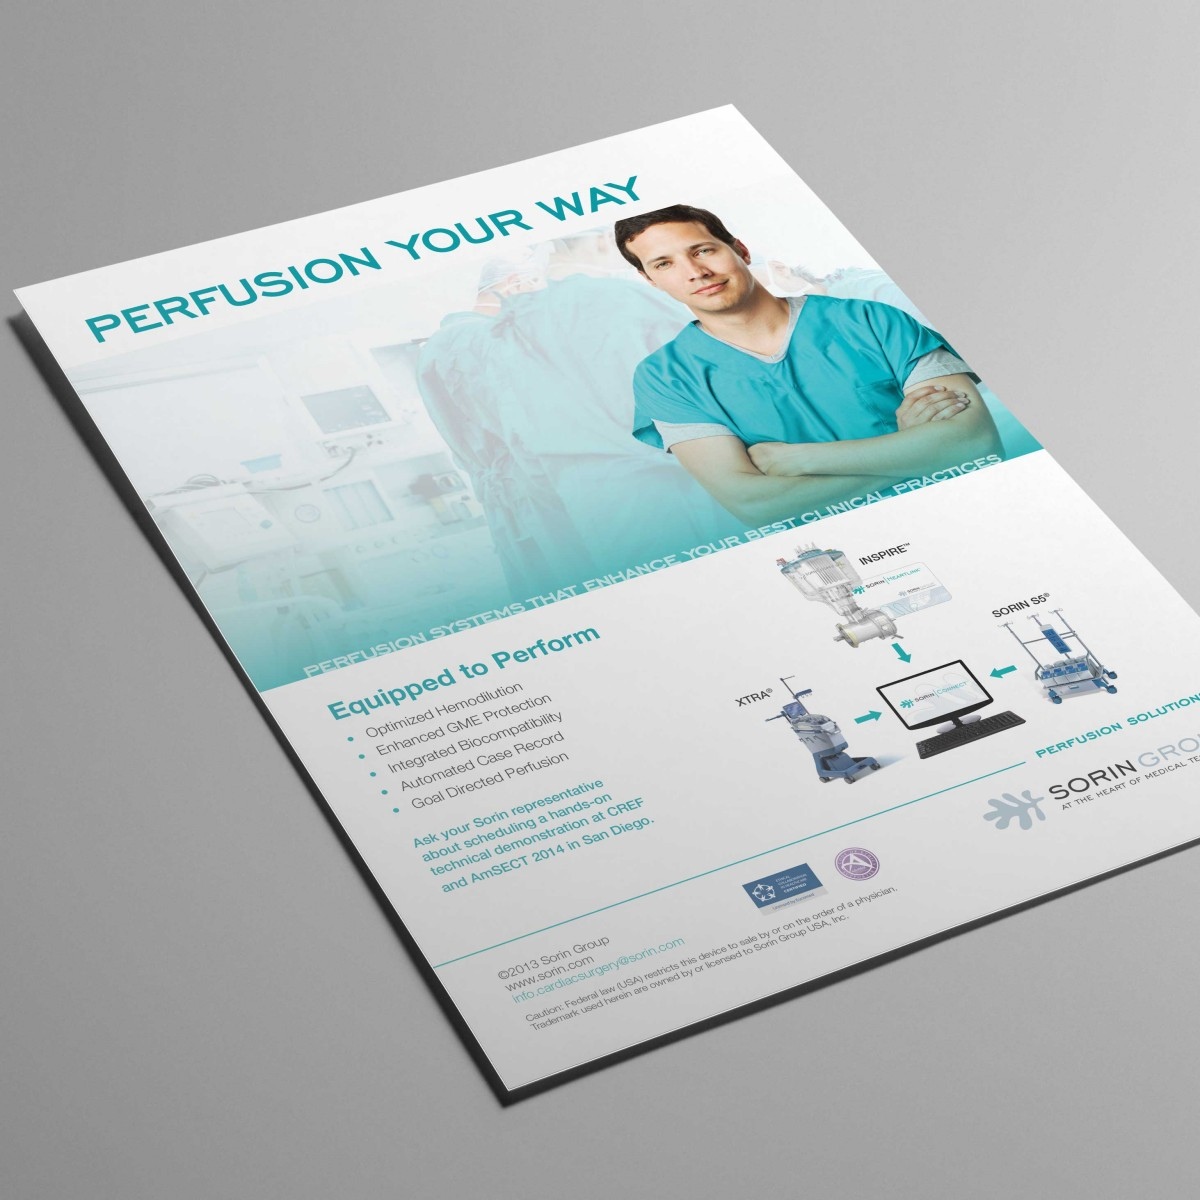 Sorin perfusion product ad